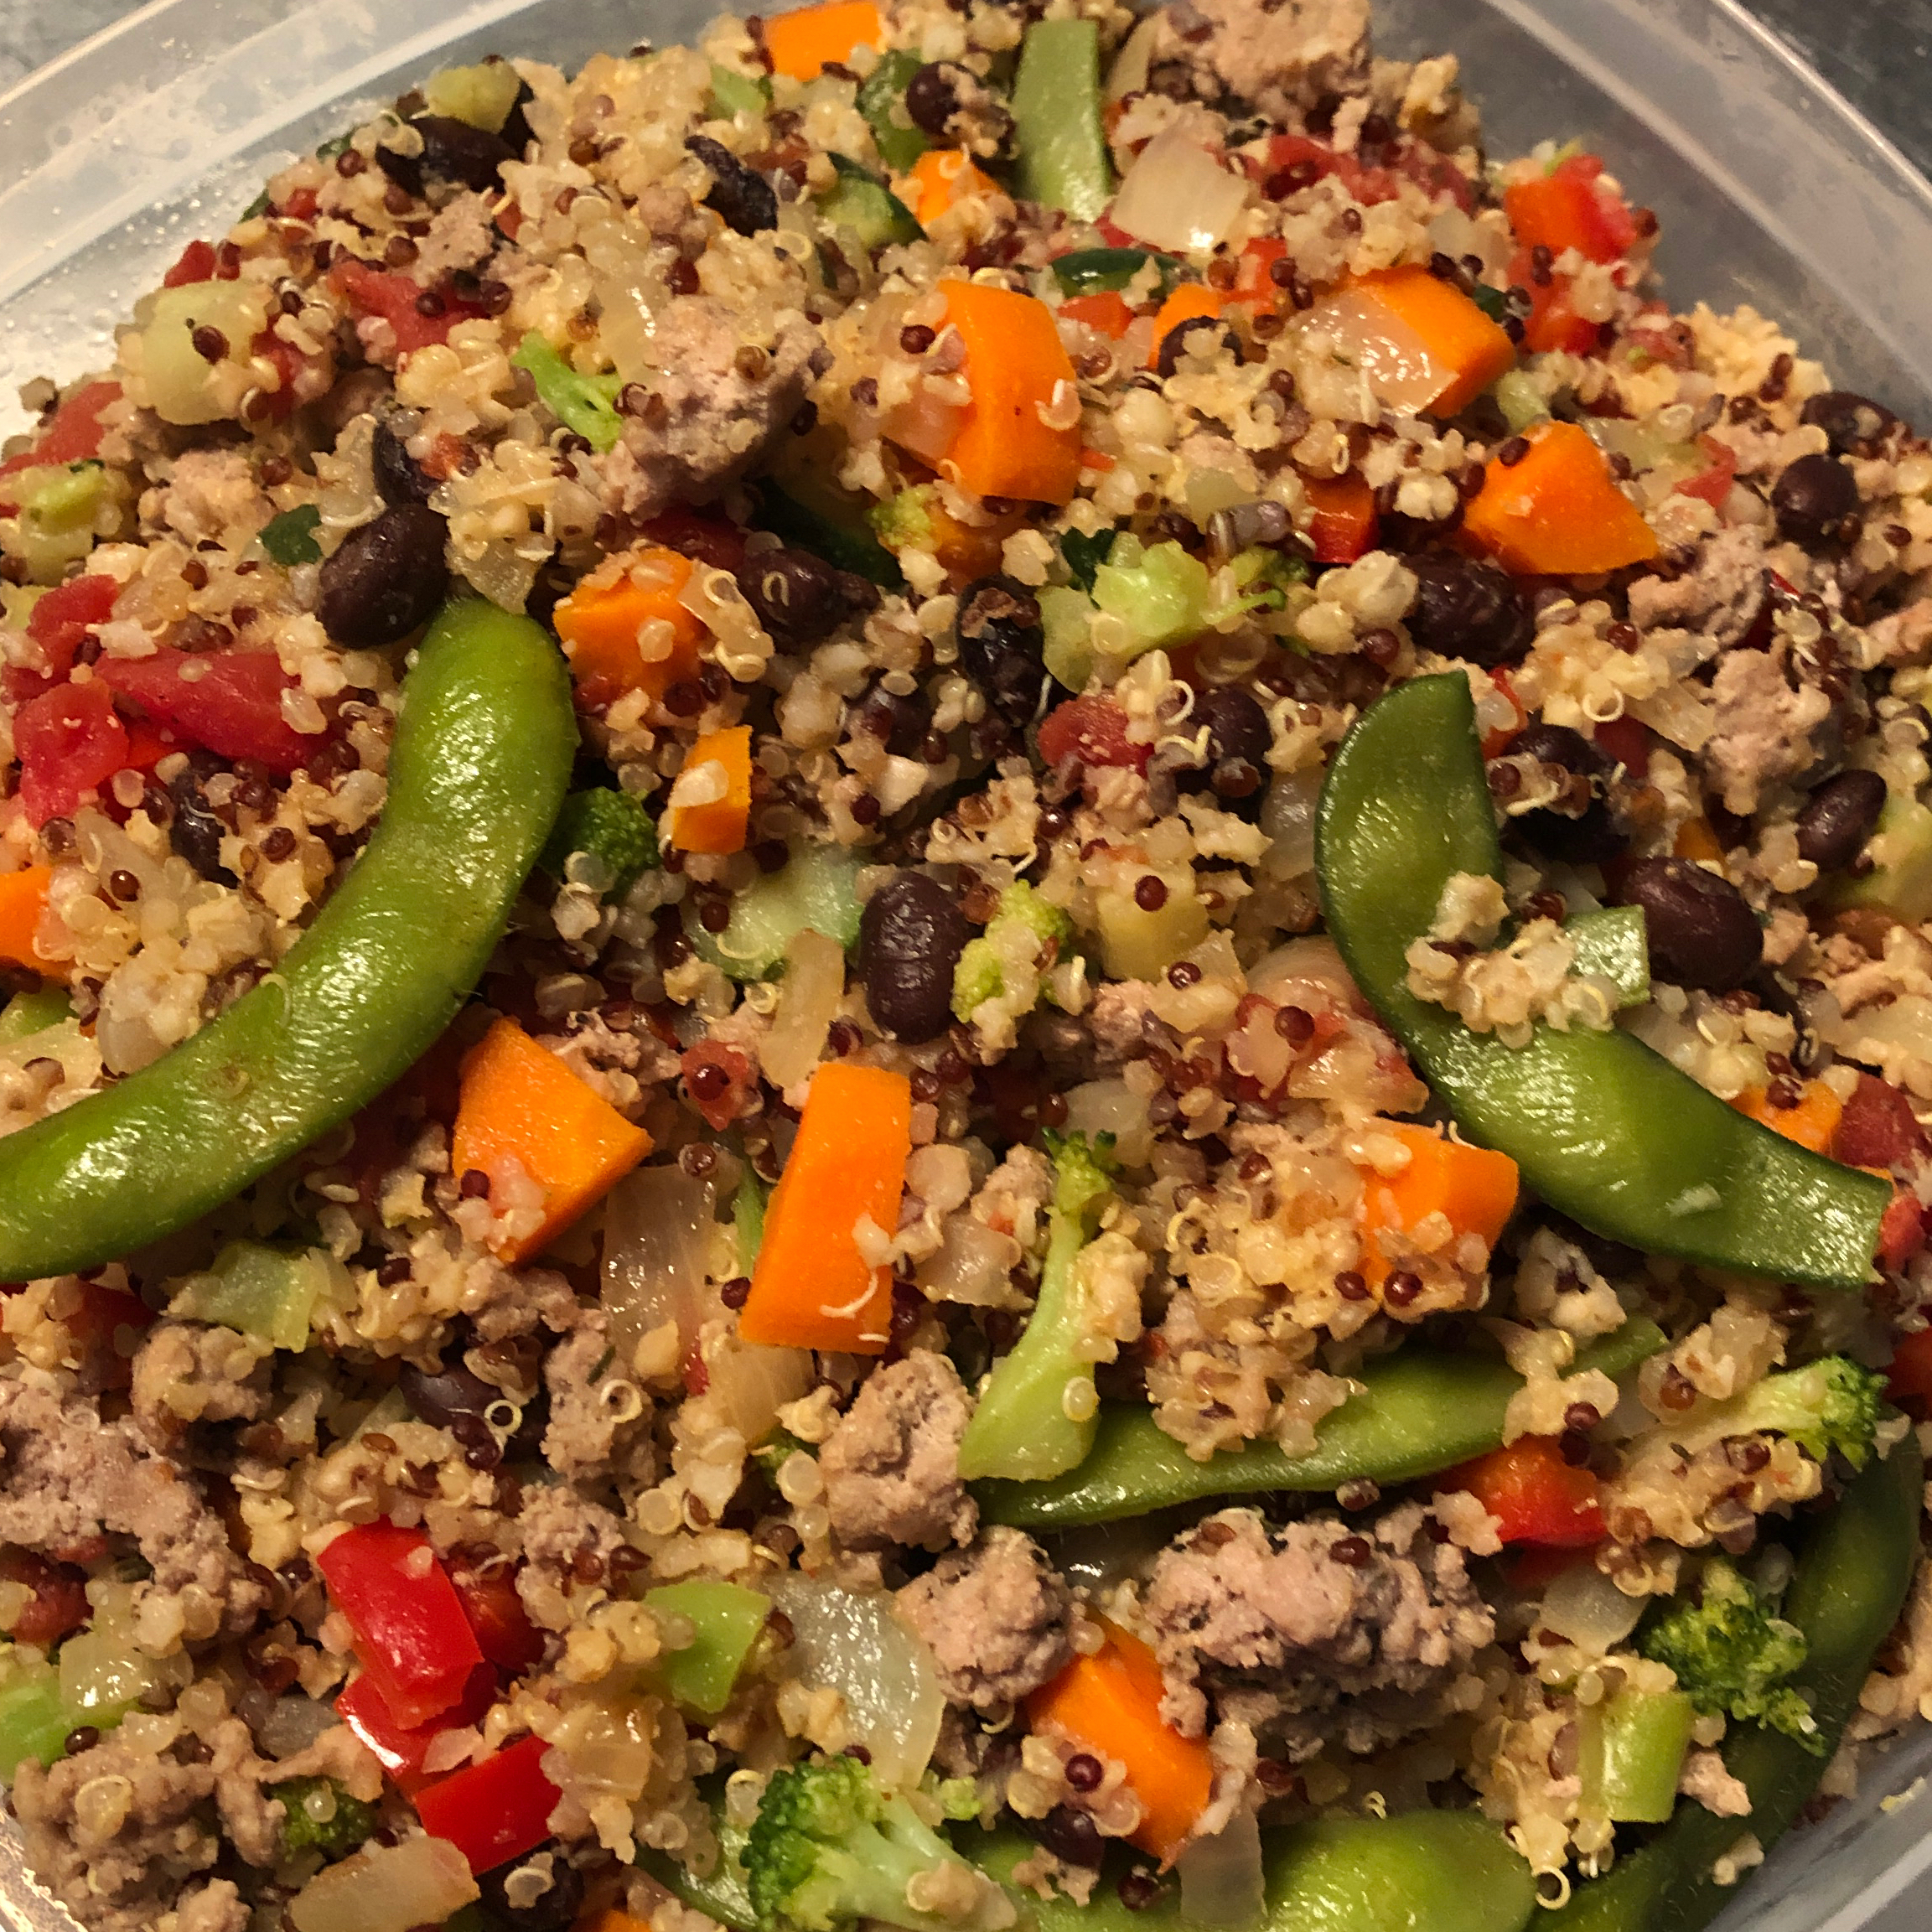 Carrot, Tomato, and Spinach Quinoa Pilaf with Ground Turkey